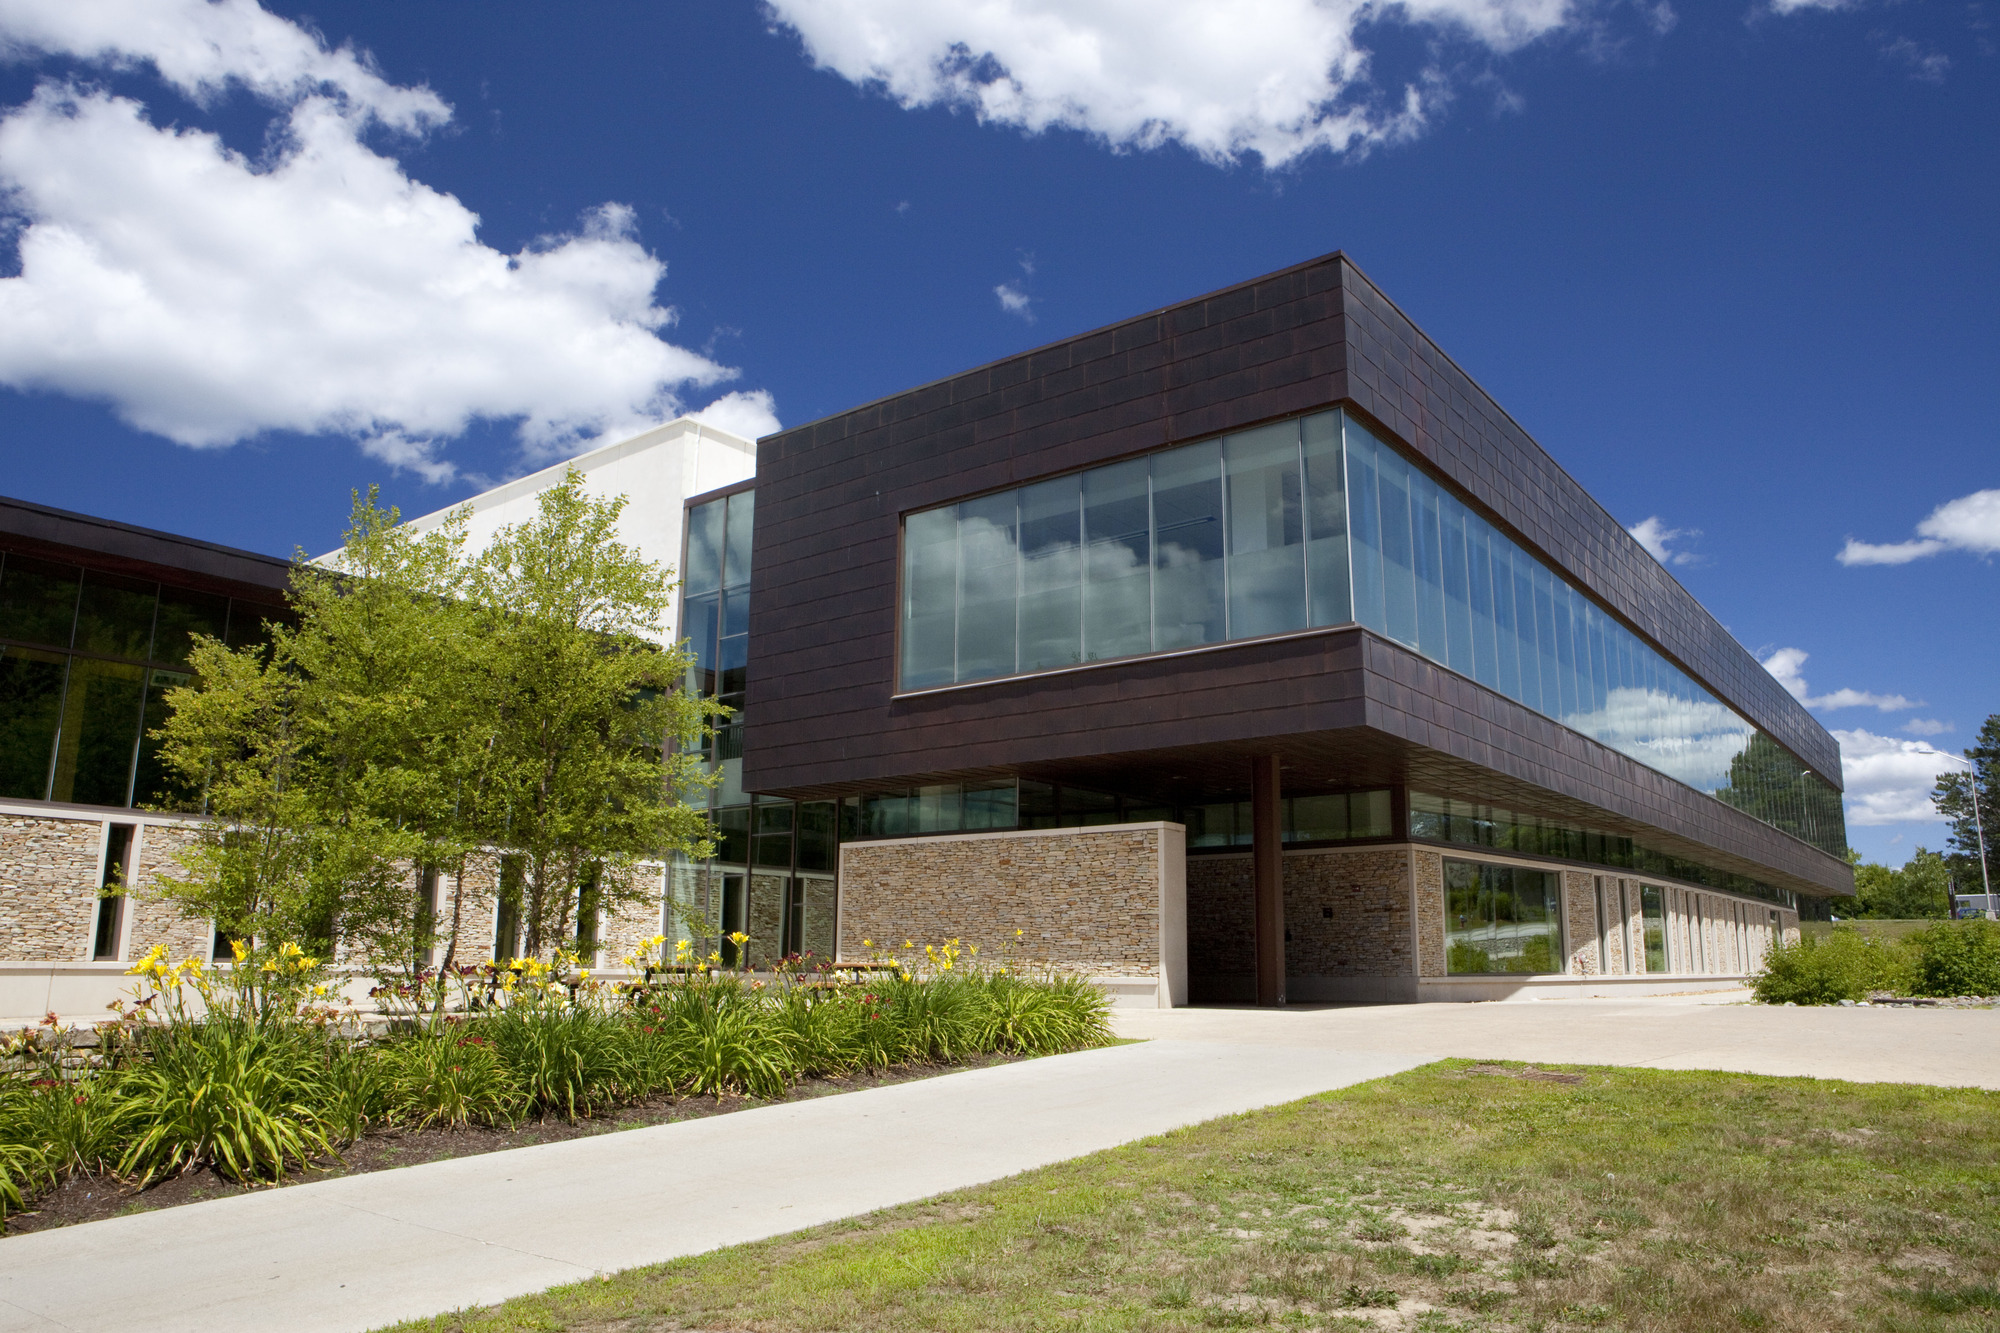 Leed Certified Buildings Office Of Sustainability University Of